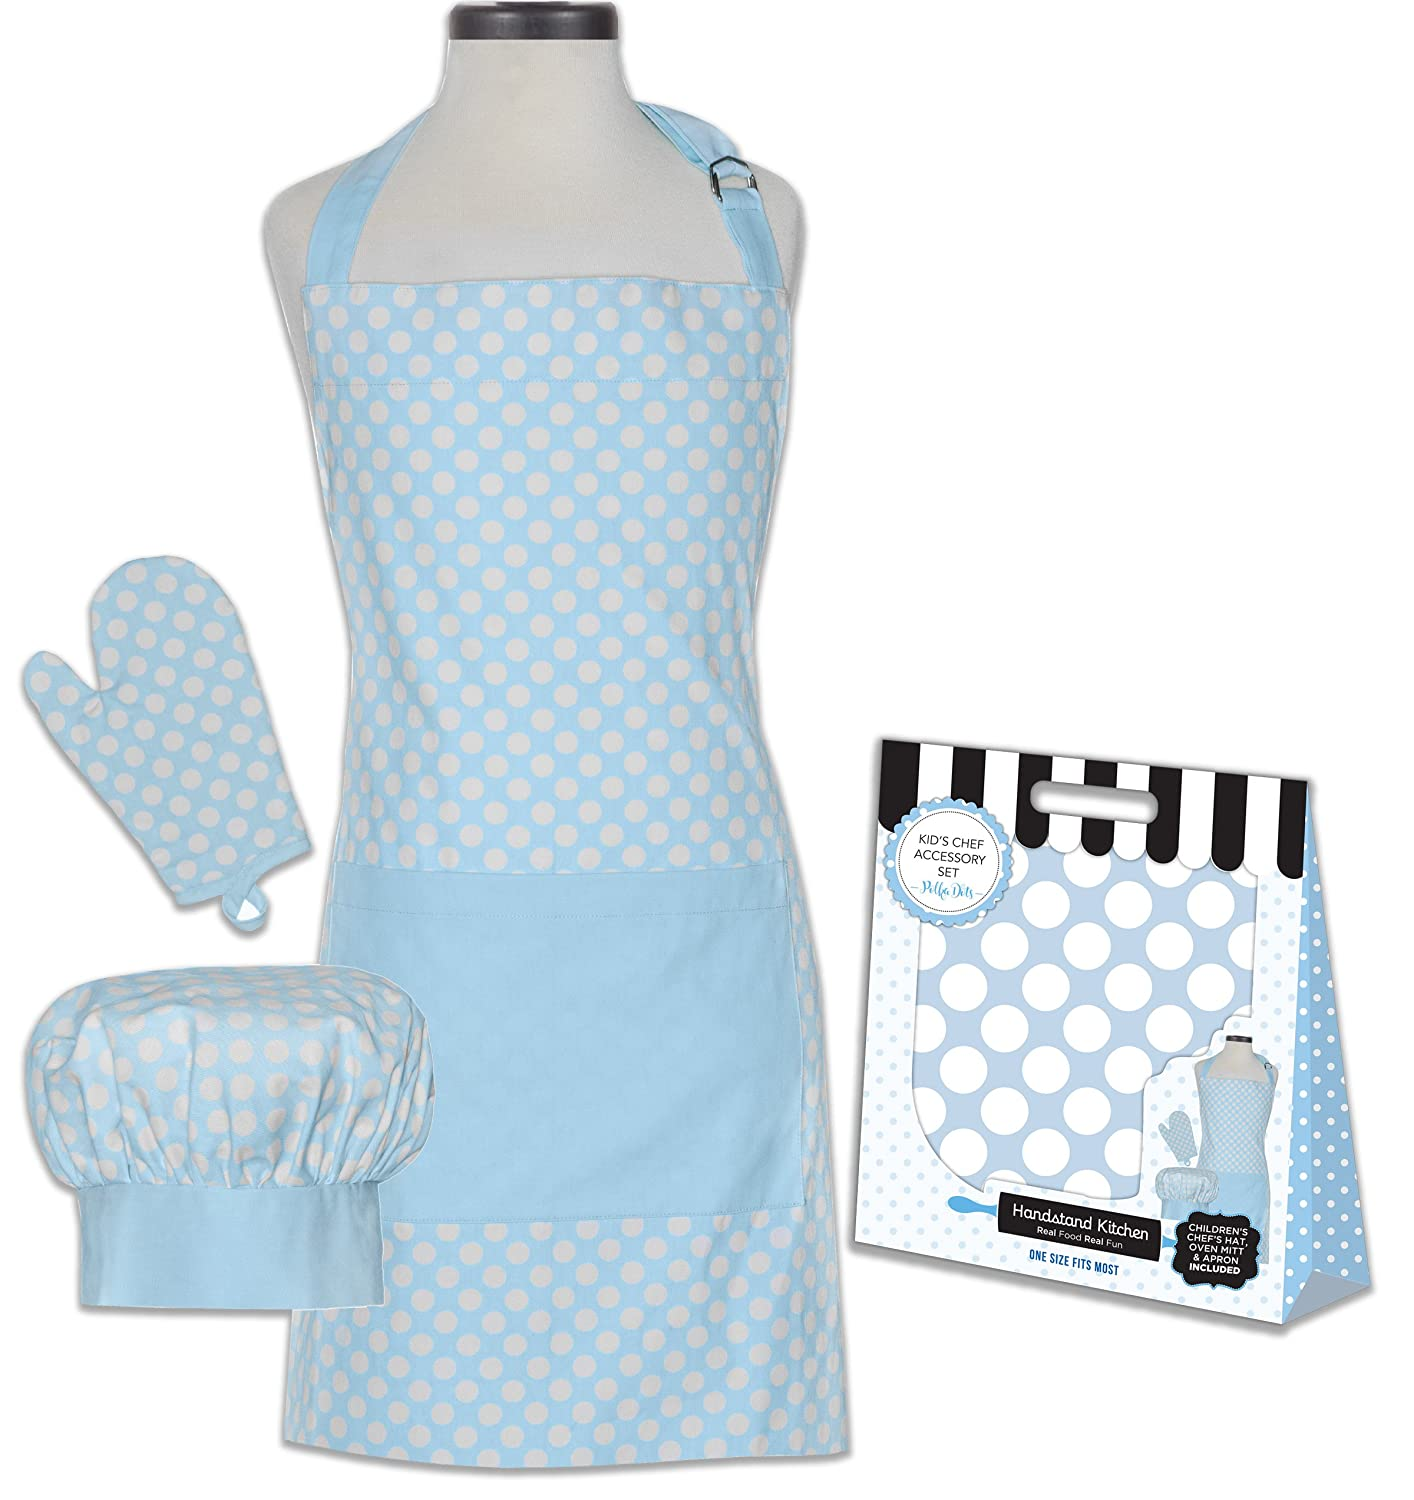 06e0d0af9c Handstand Kitchen Child's Classic Polka Dots 100% Cotton Apron, Mitt and  Chef's Hat Gift Set